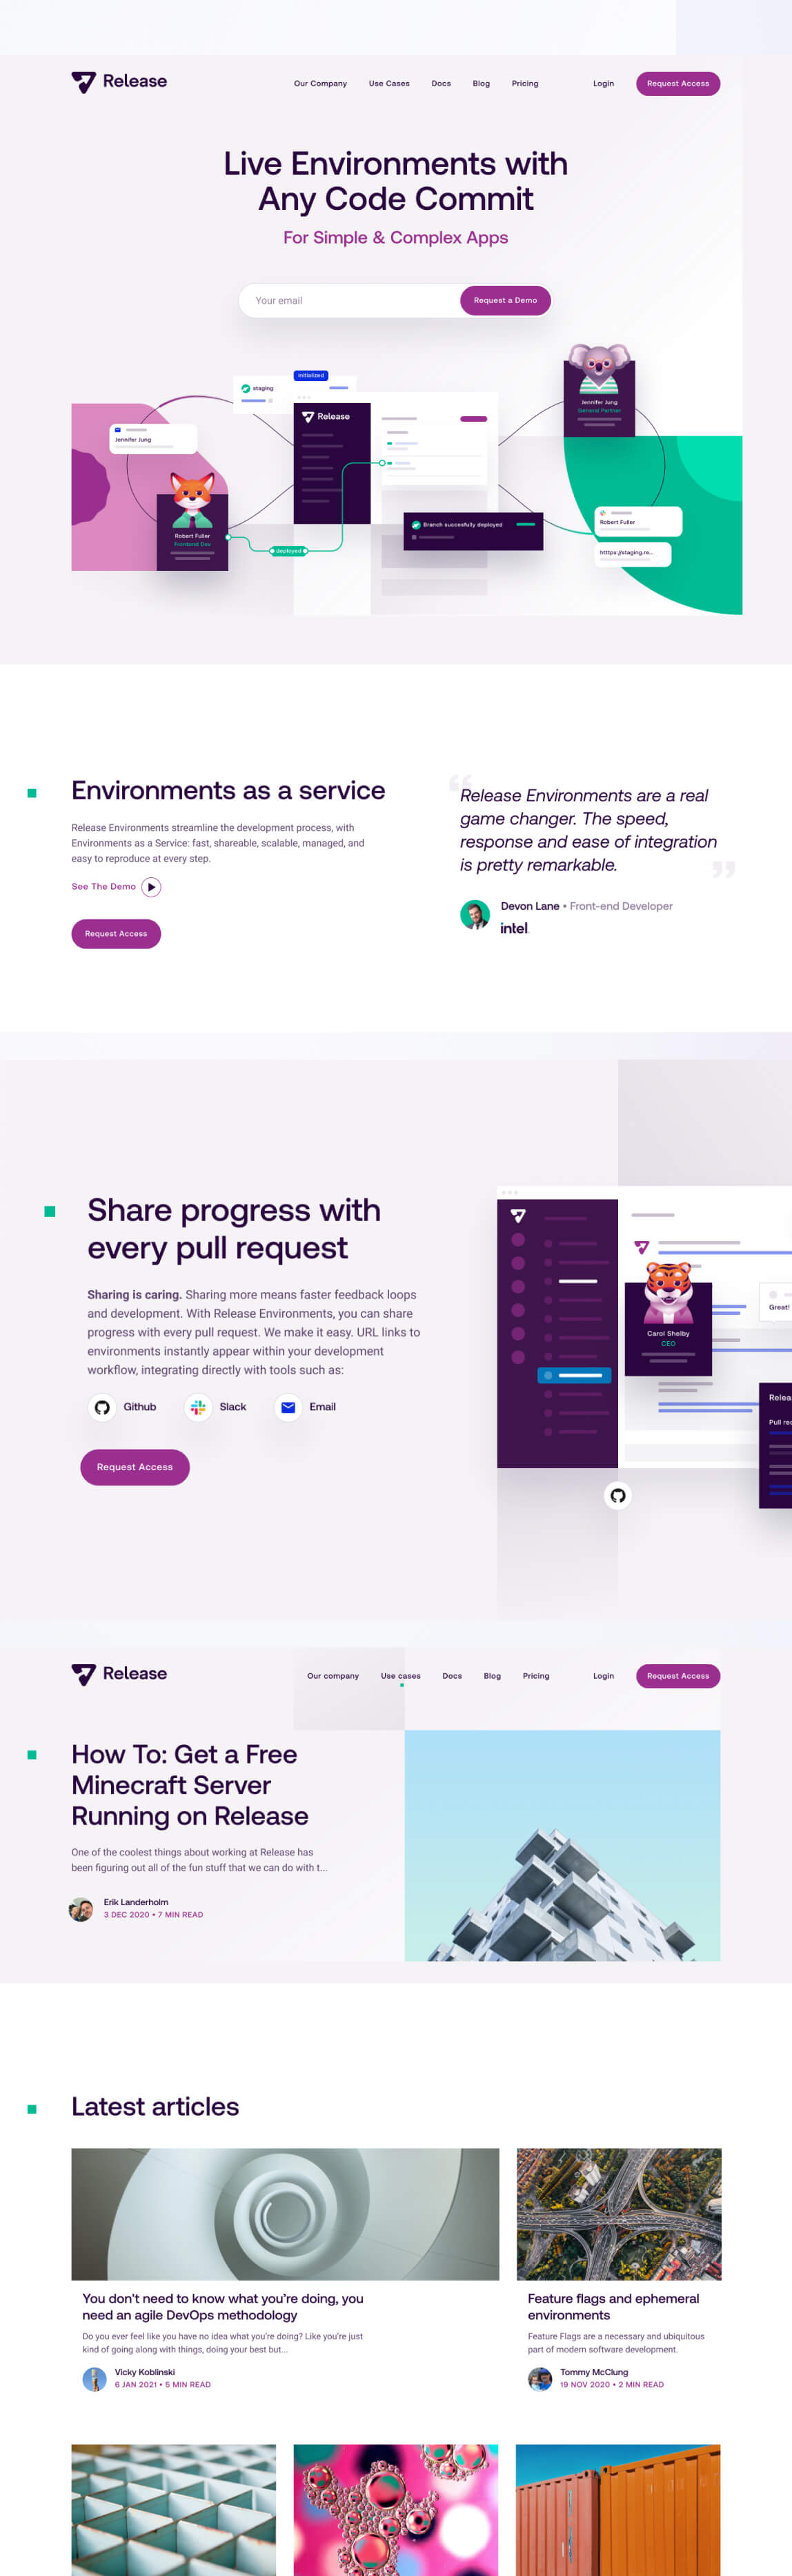 release homepage designed by zypsy design team